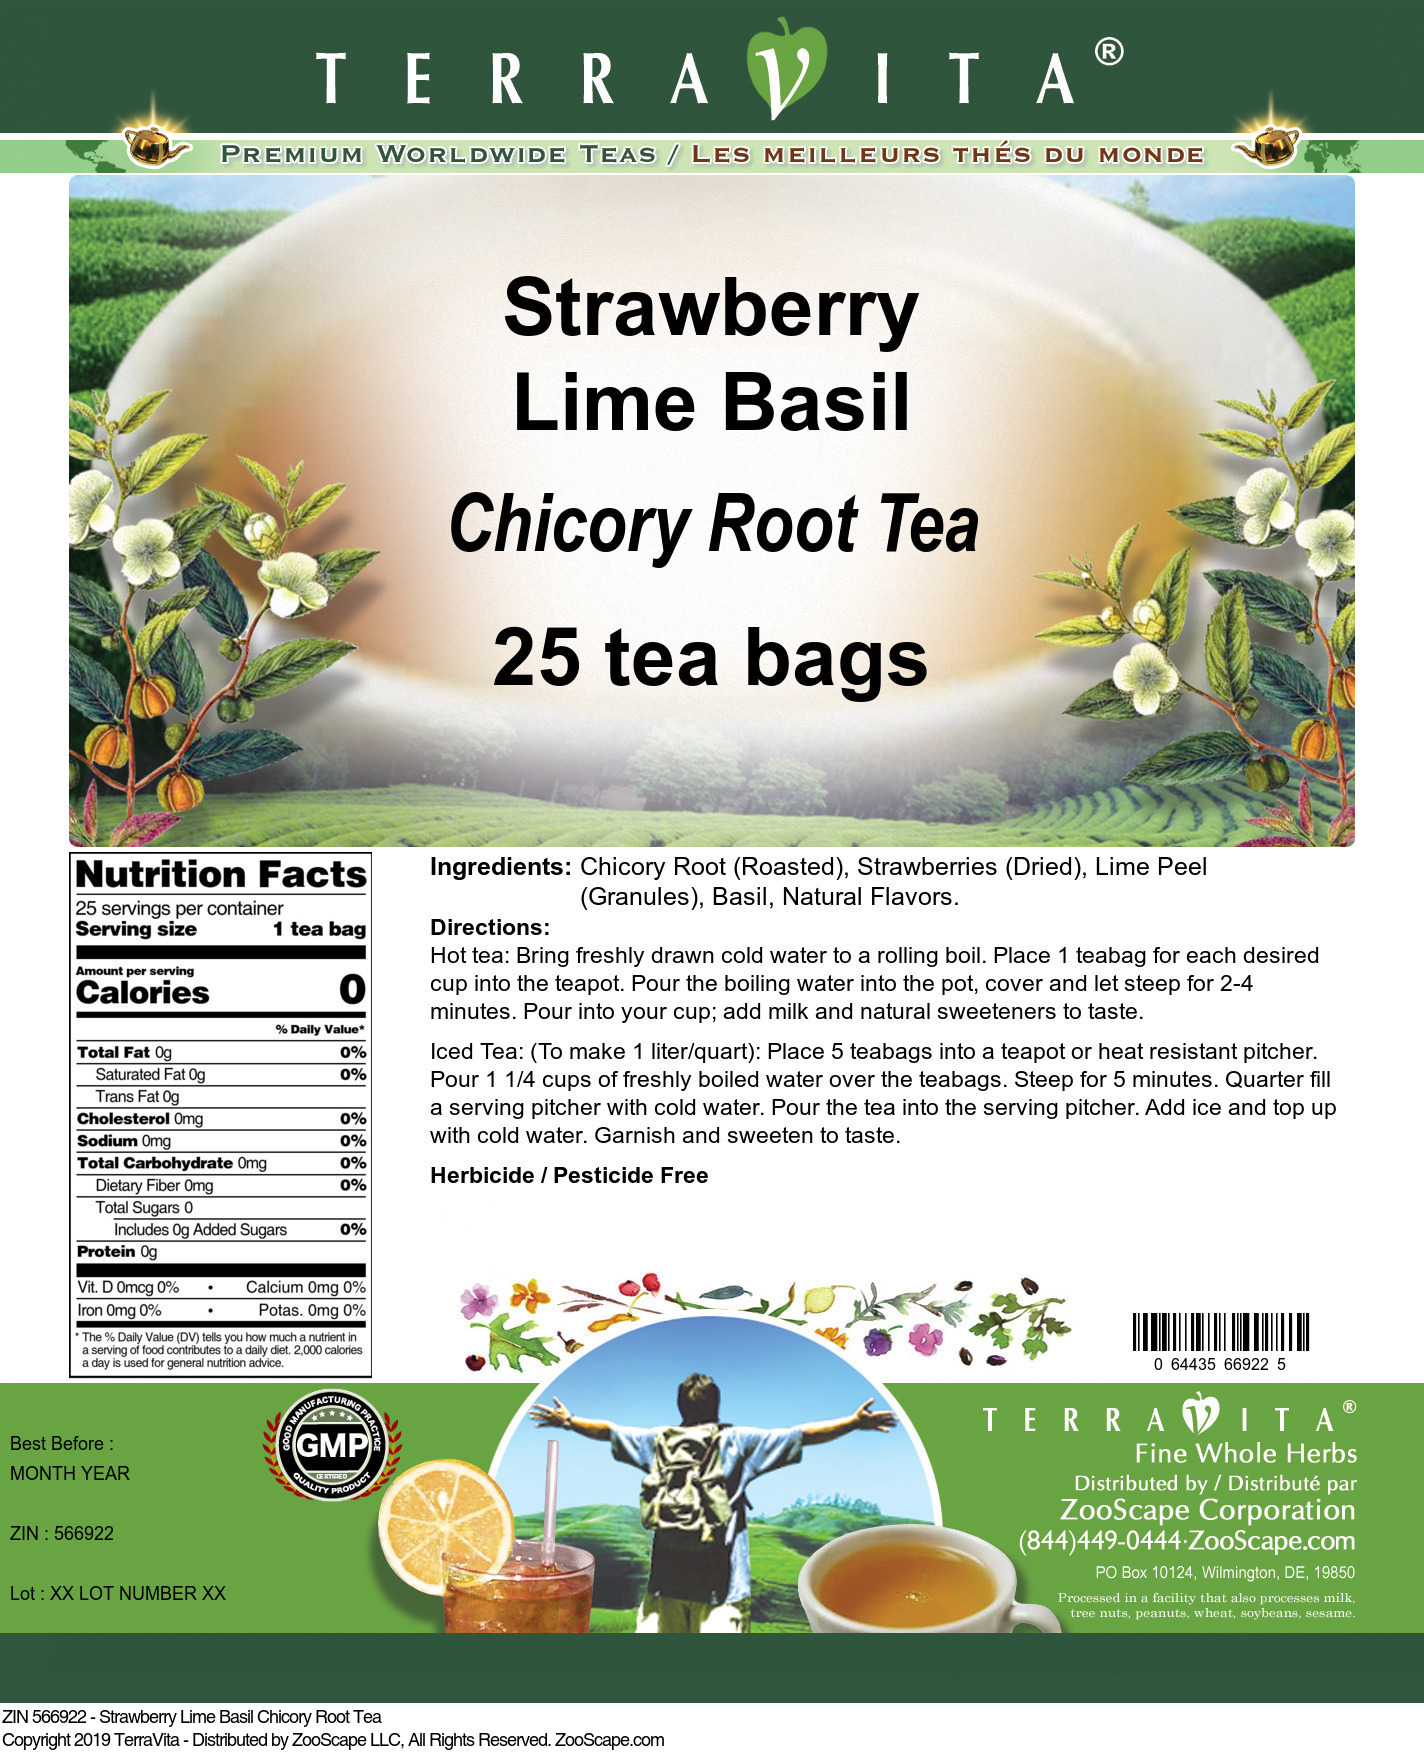 Strawberry Lime Basil Chicory Root Tea